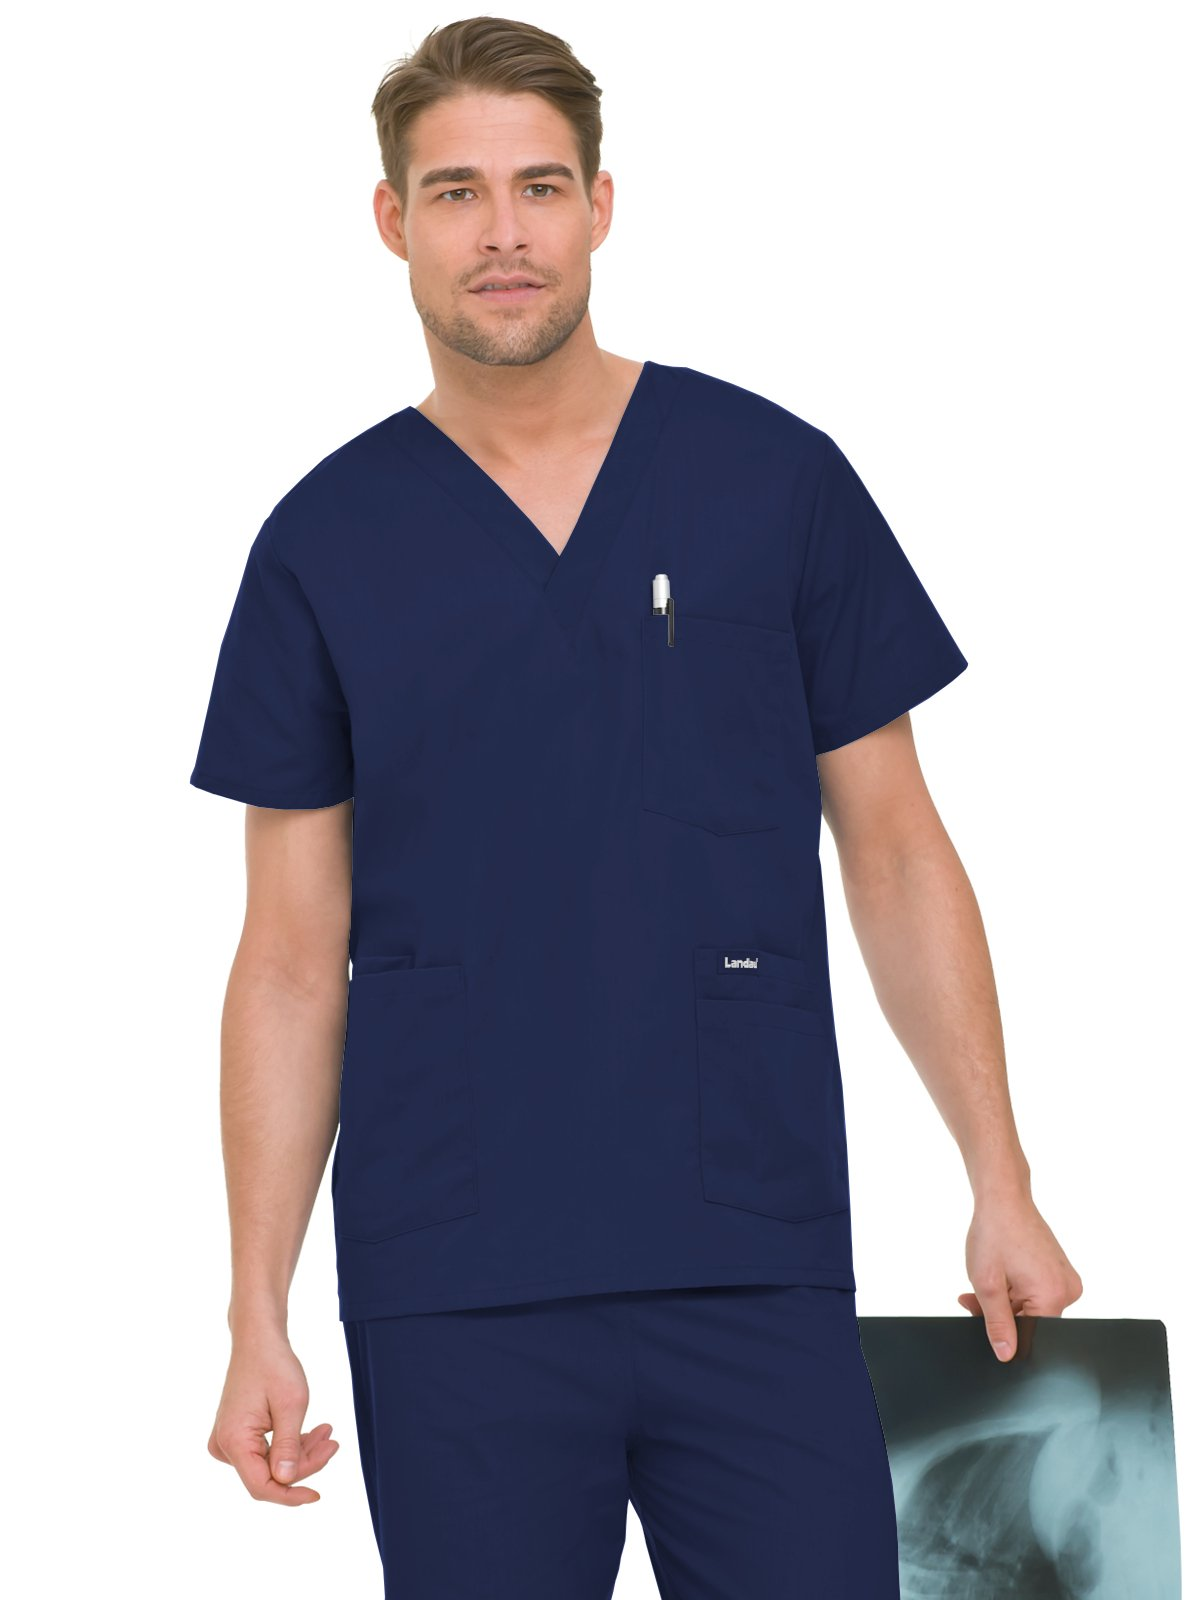 Landau Essentials Men's 5-Pocket Scrub Top Navy XLT by Landau